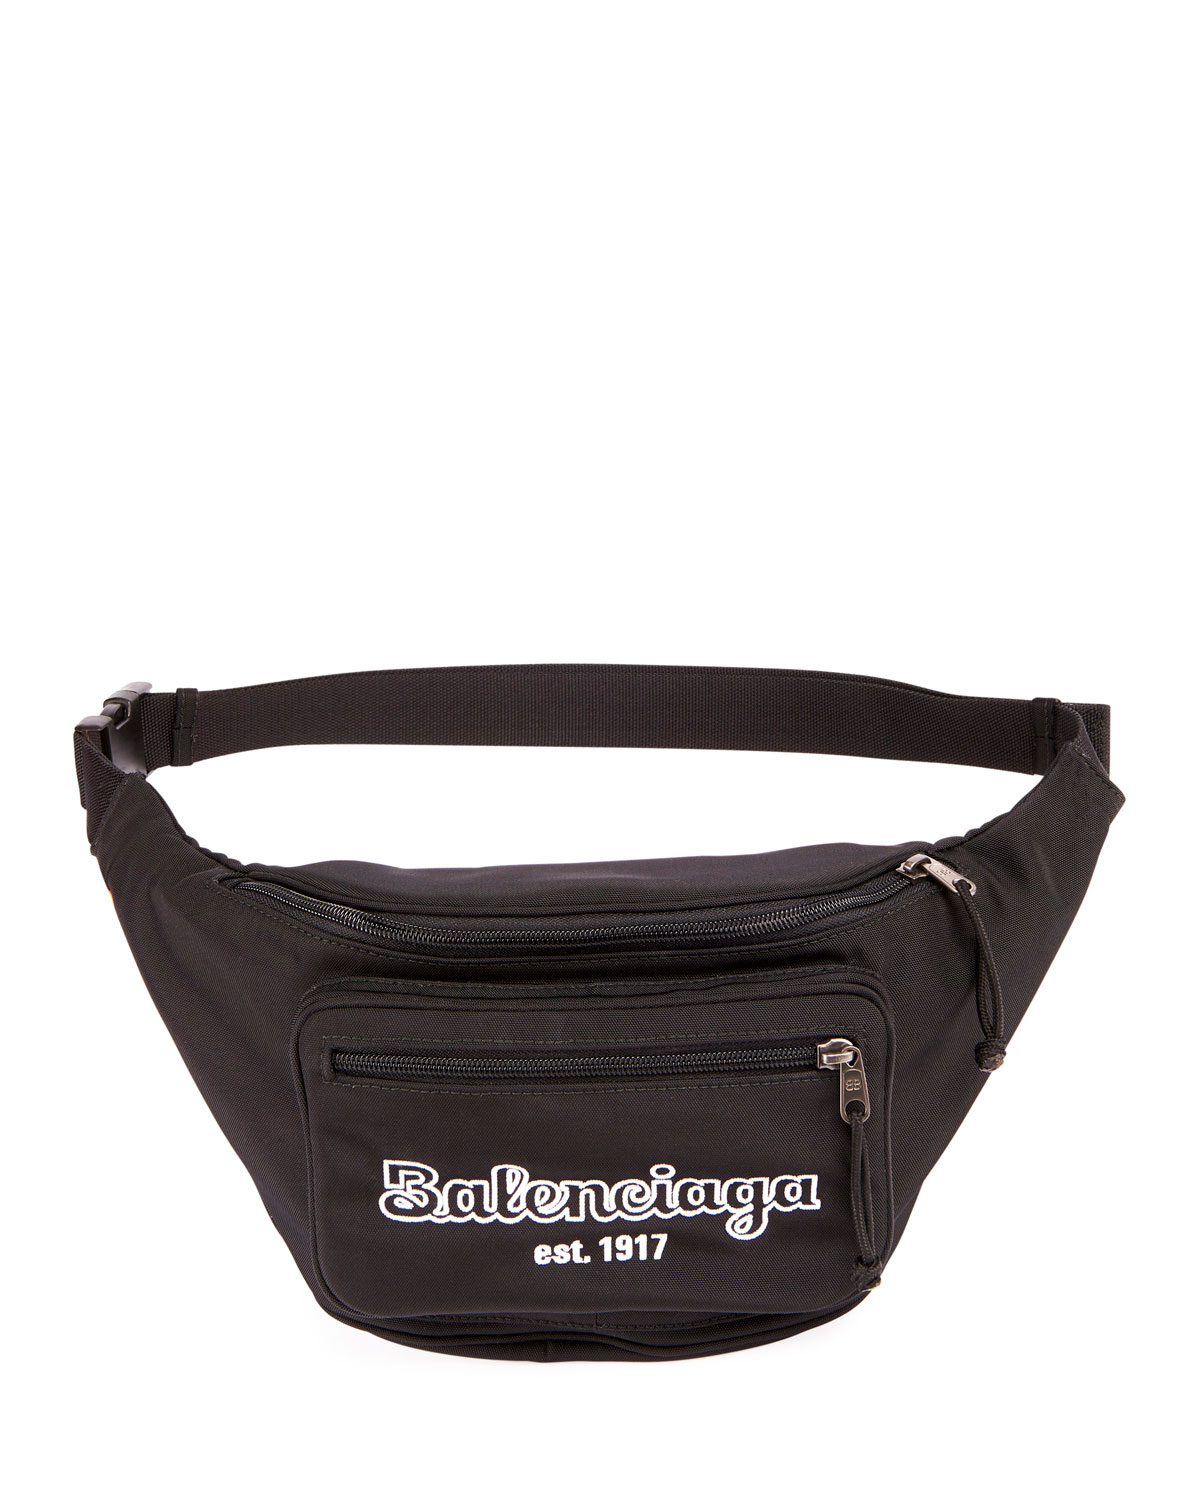 7a9d8319fad Balenciaga Men's Explorer Belt Bag/Fanny Pack In Black | ModeSens